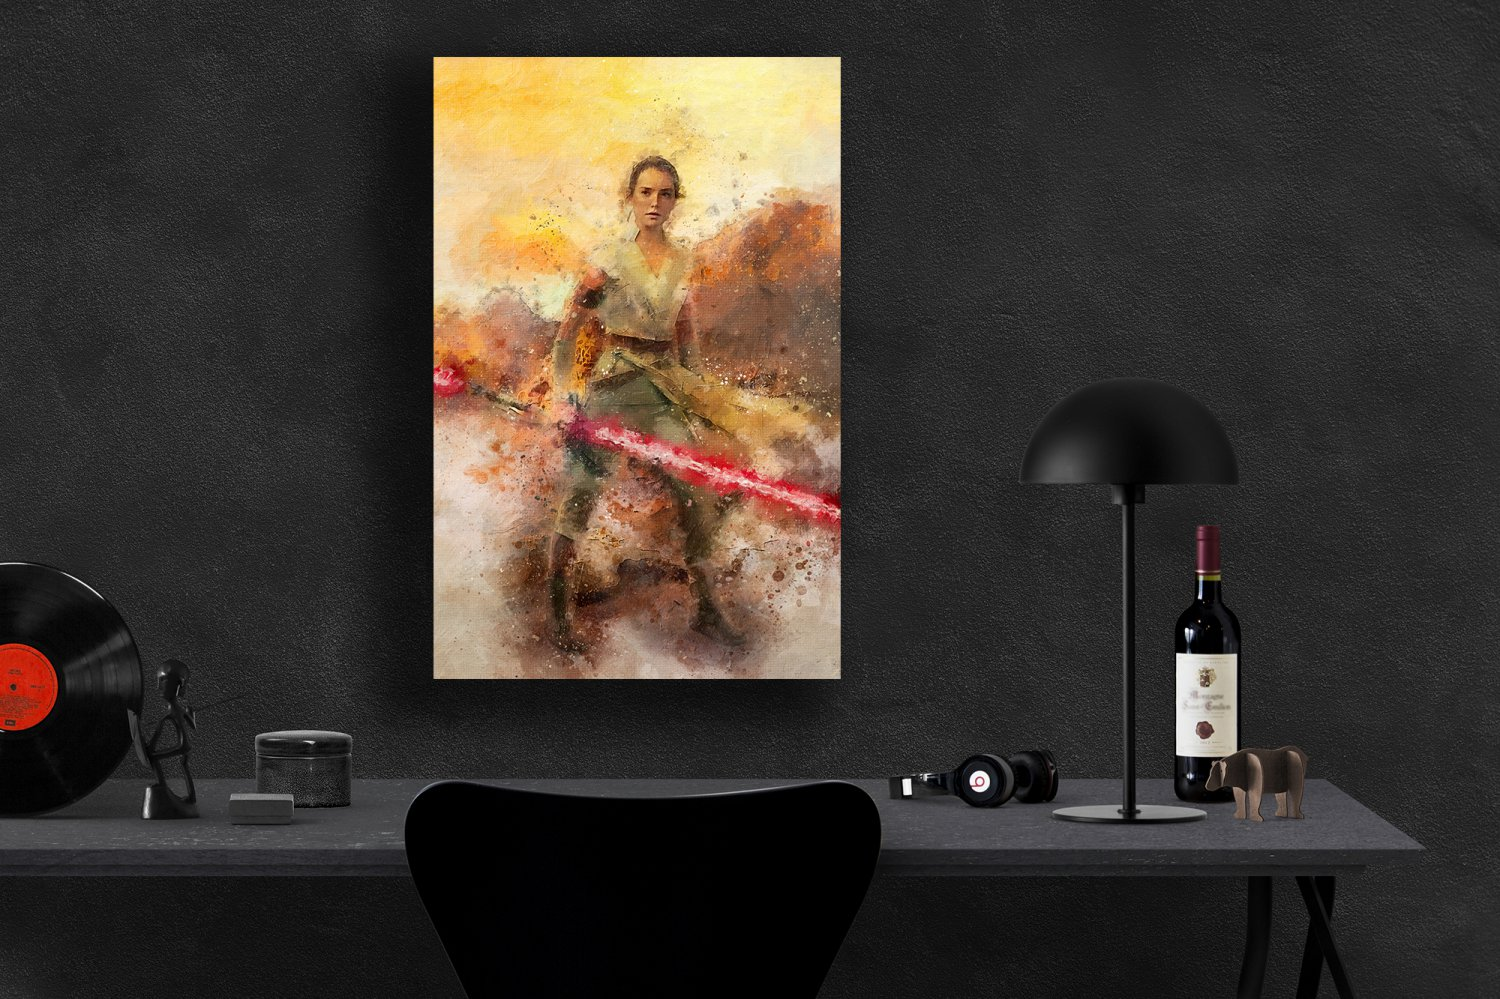 Star Wars, Rey, Daisy Ridley, The Rise of Skywalker  13x19 inches Canvas Print